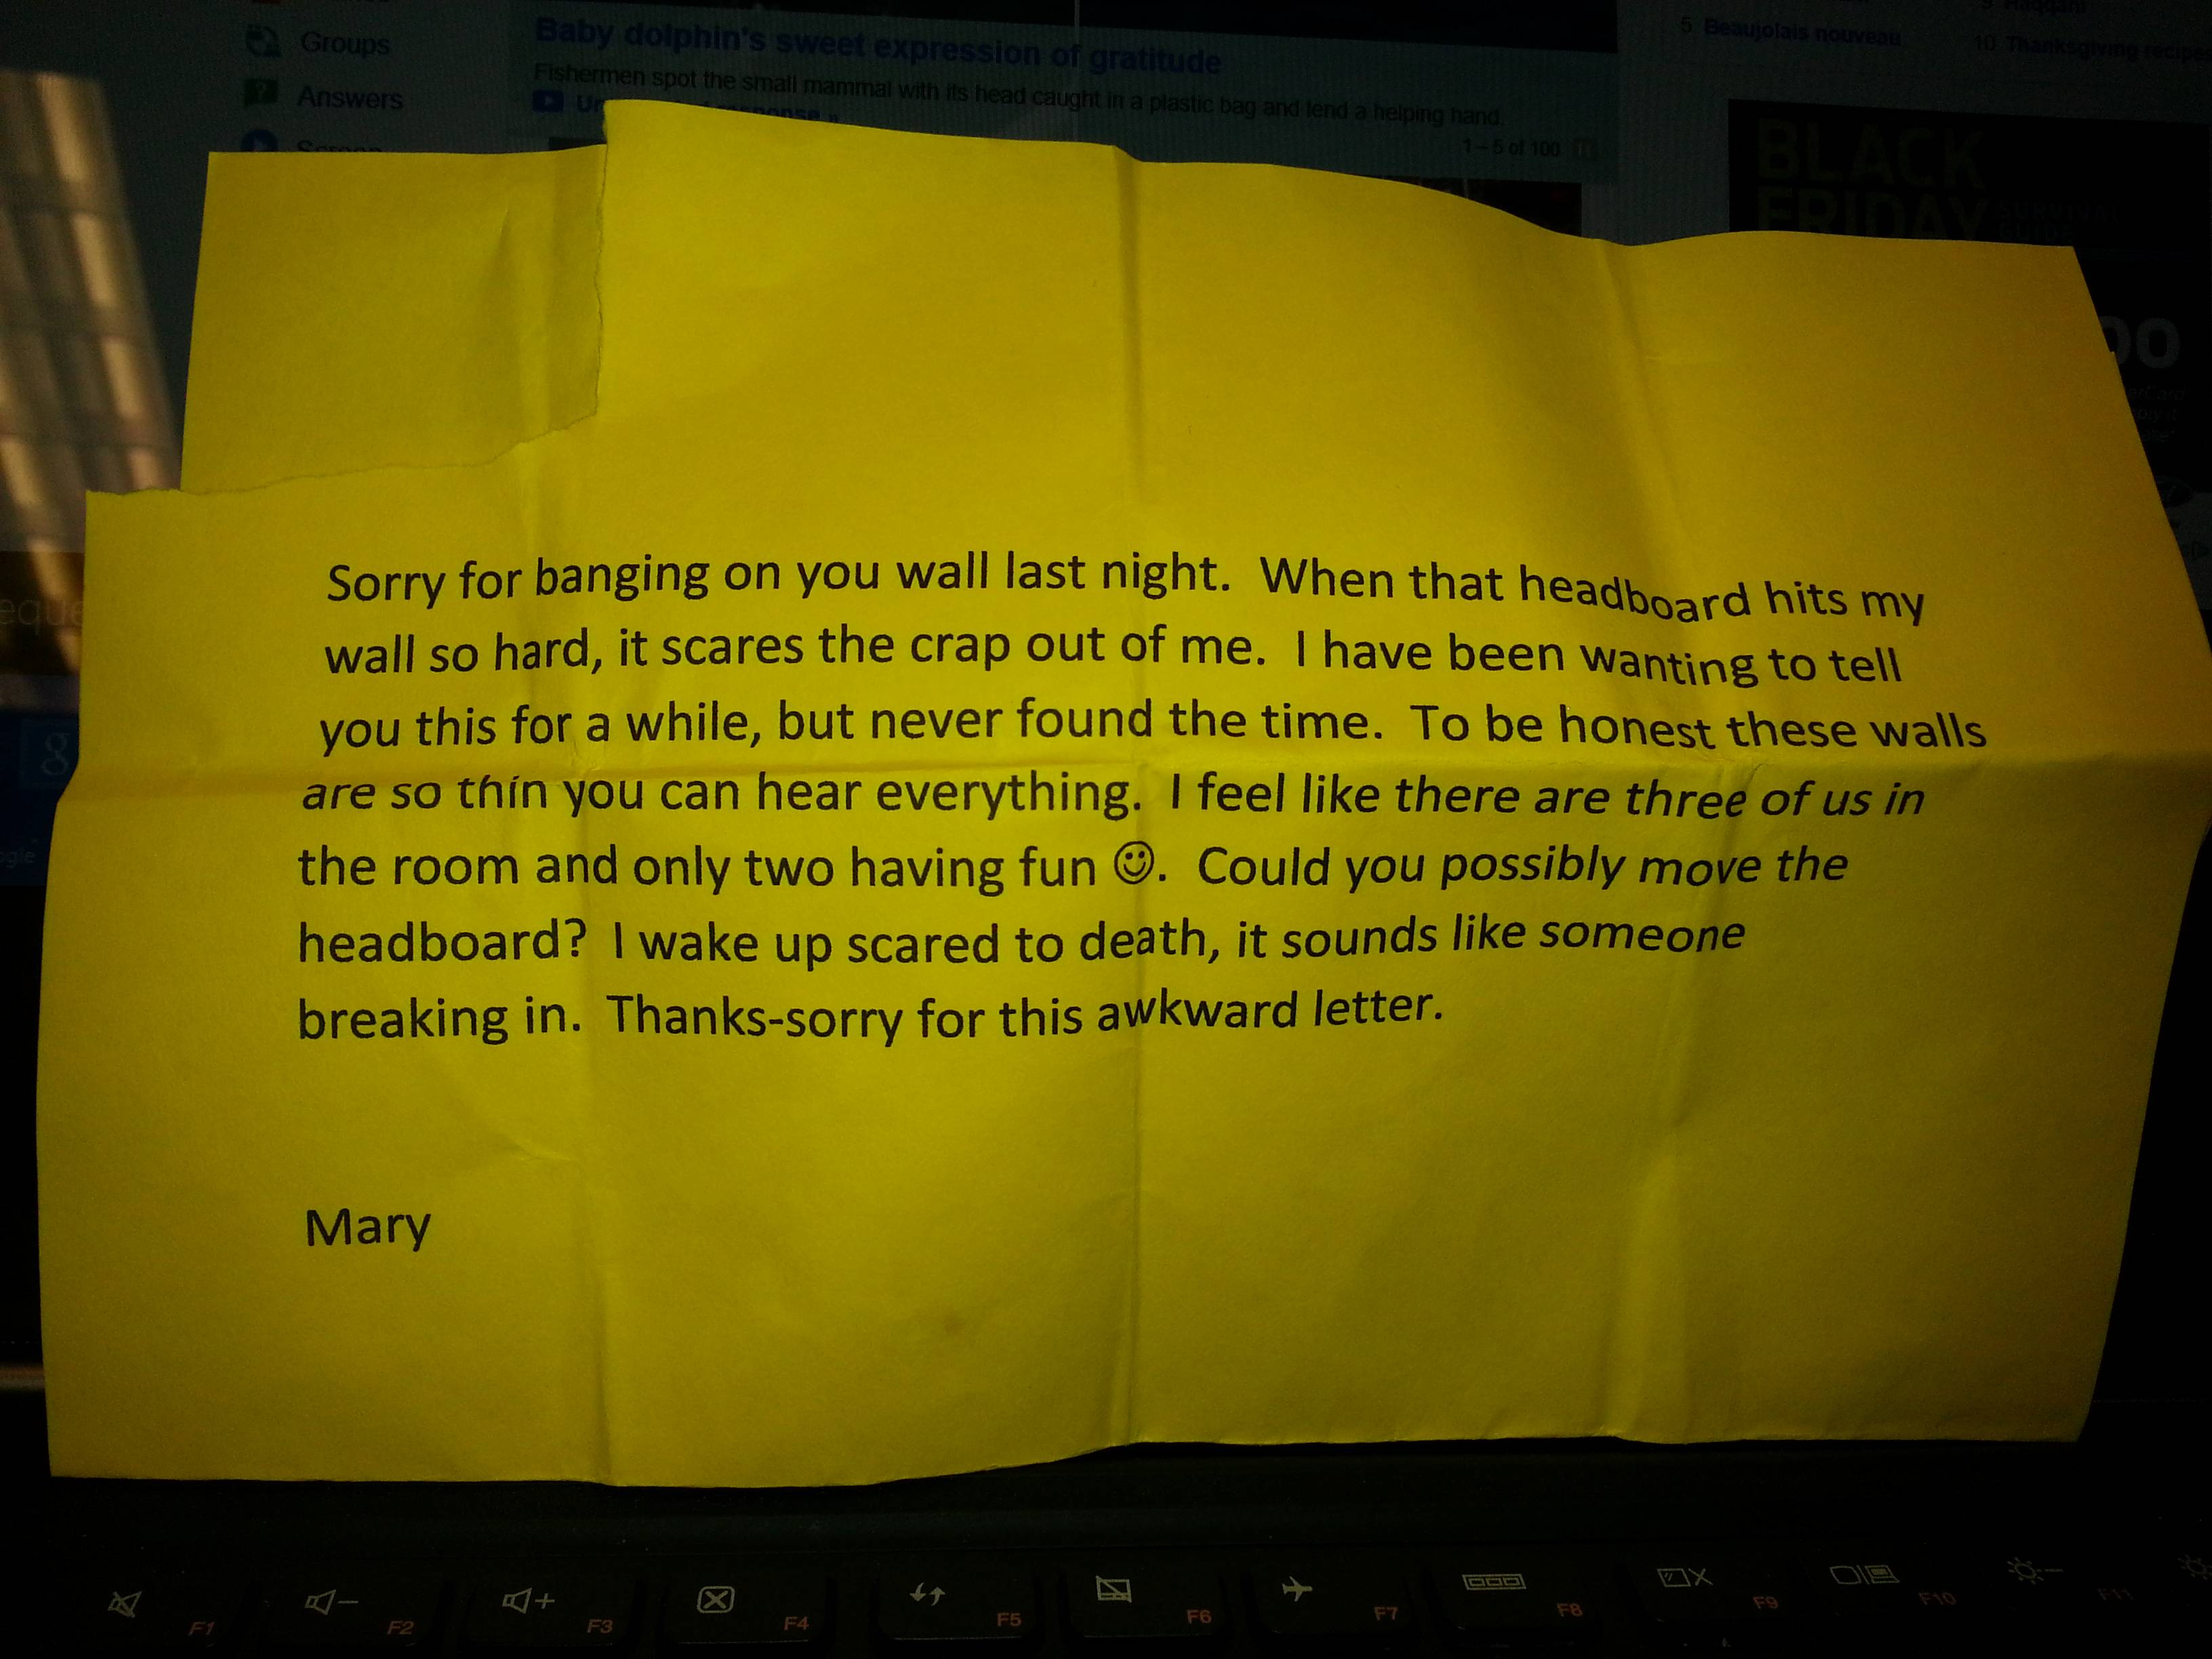 She wrote a letter to the neighbors, who had loud sex, and received an unexpected response